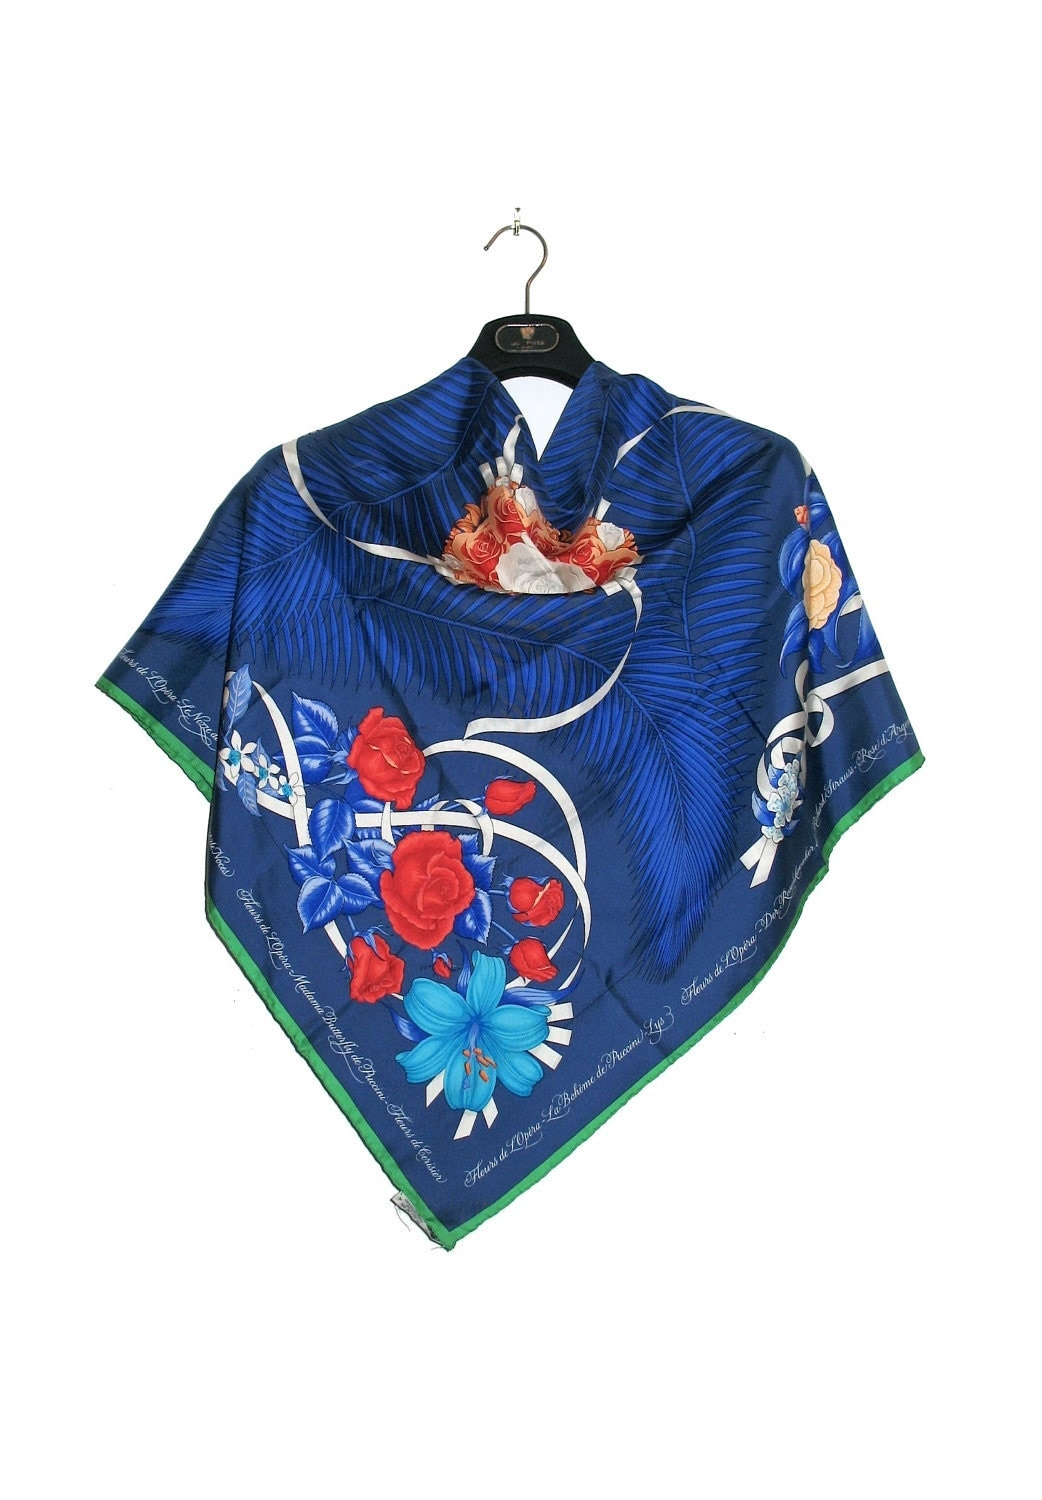 Authentic Rare HERMES Fleur de LOpera BLUE Silk Scarf Authentic Hermes Scarves